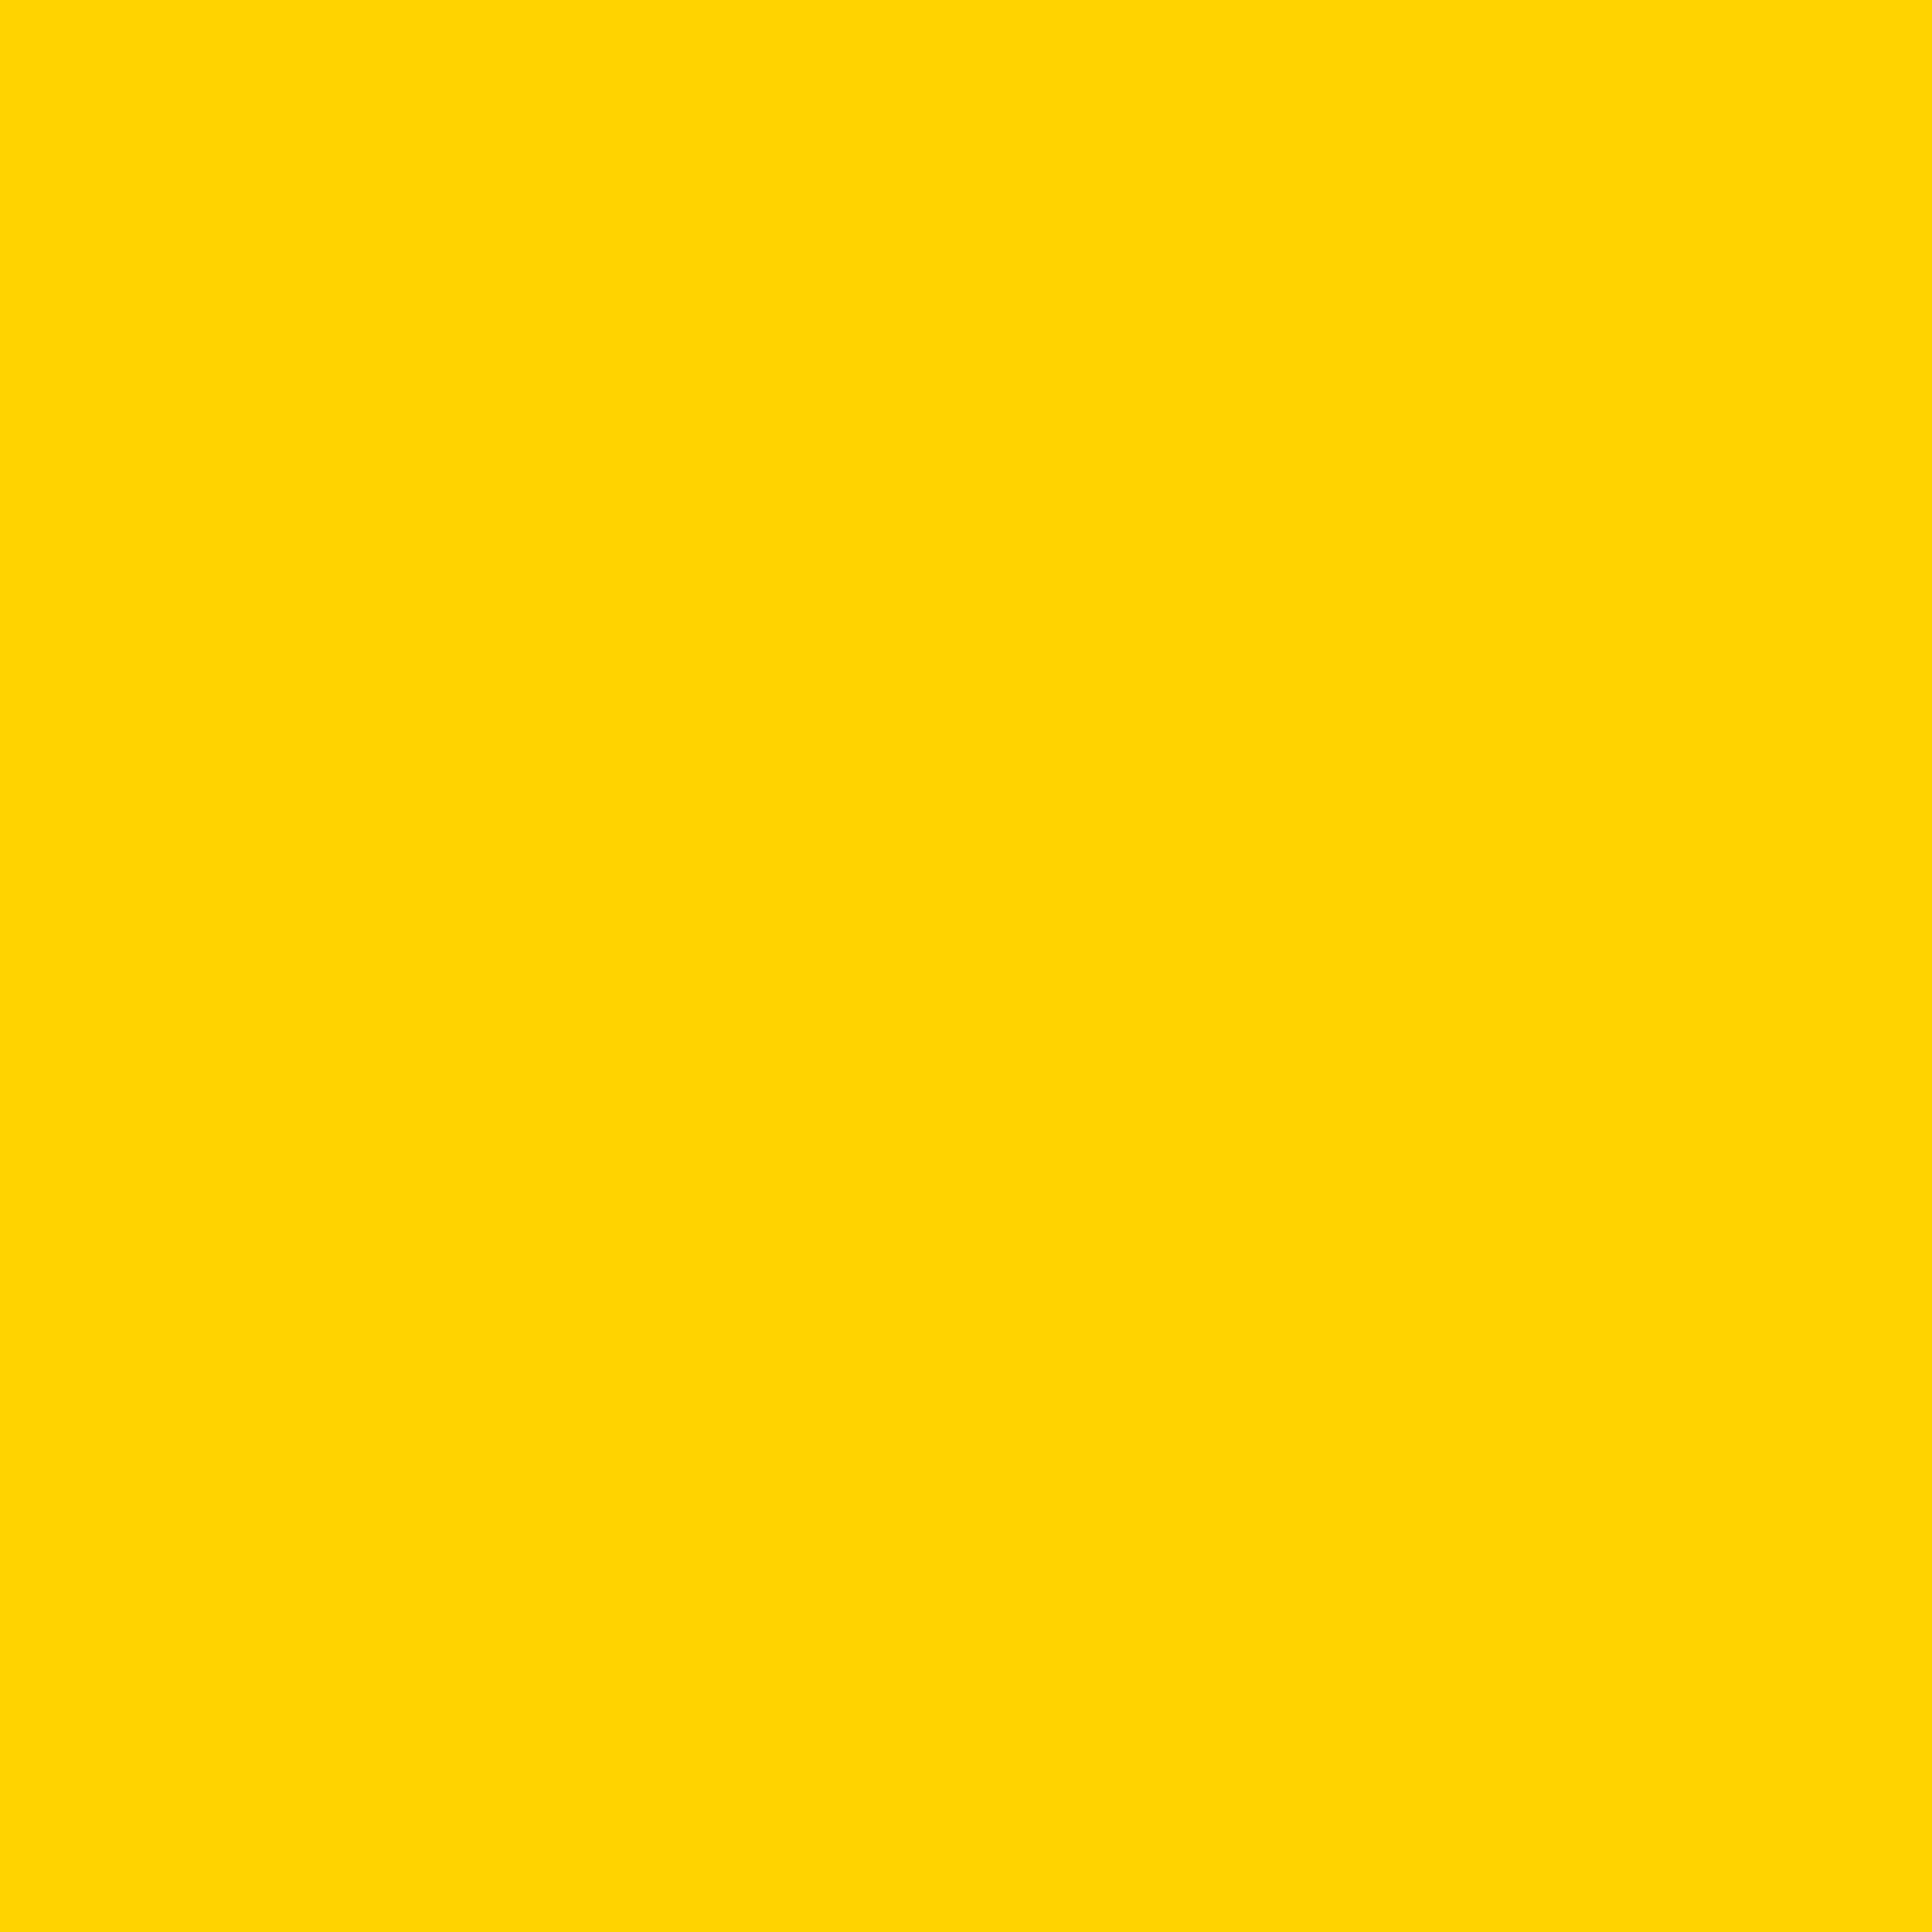 2048x2048 Yellow NCS Solid Color Background